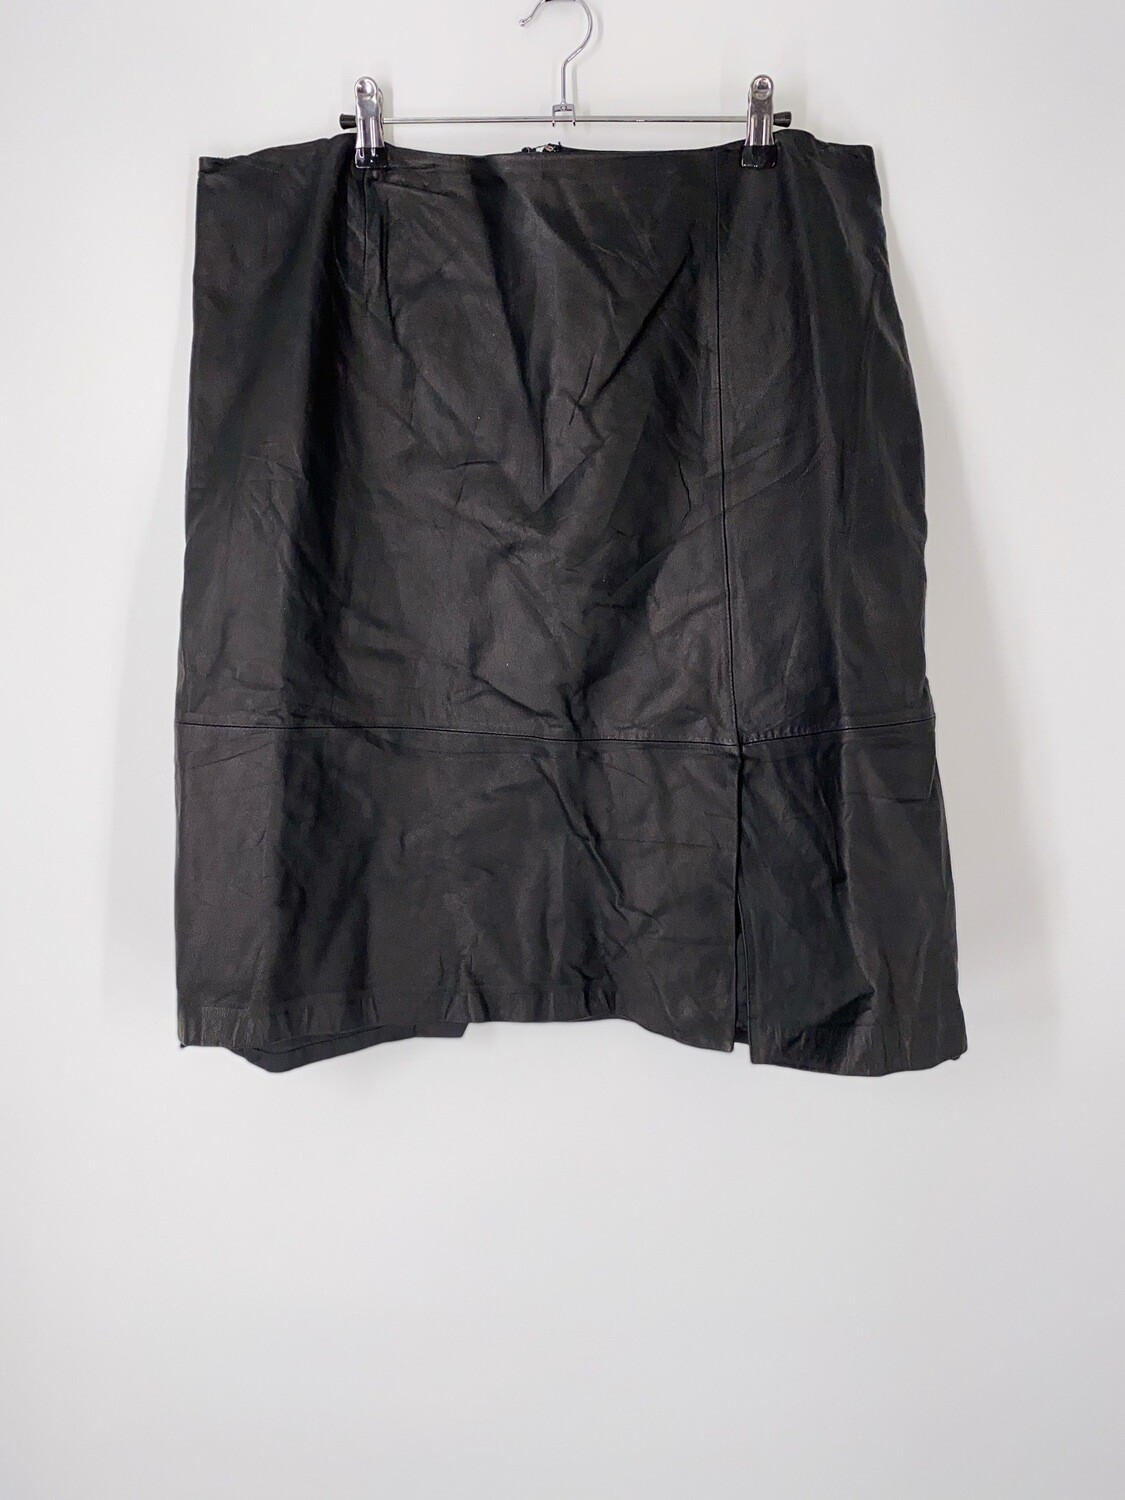 Mixit Leather Skirt Size L